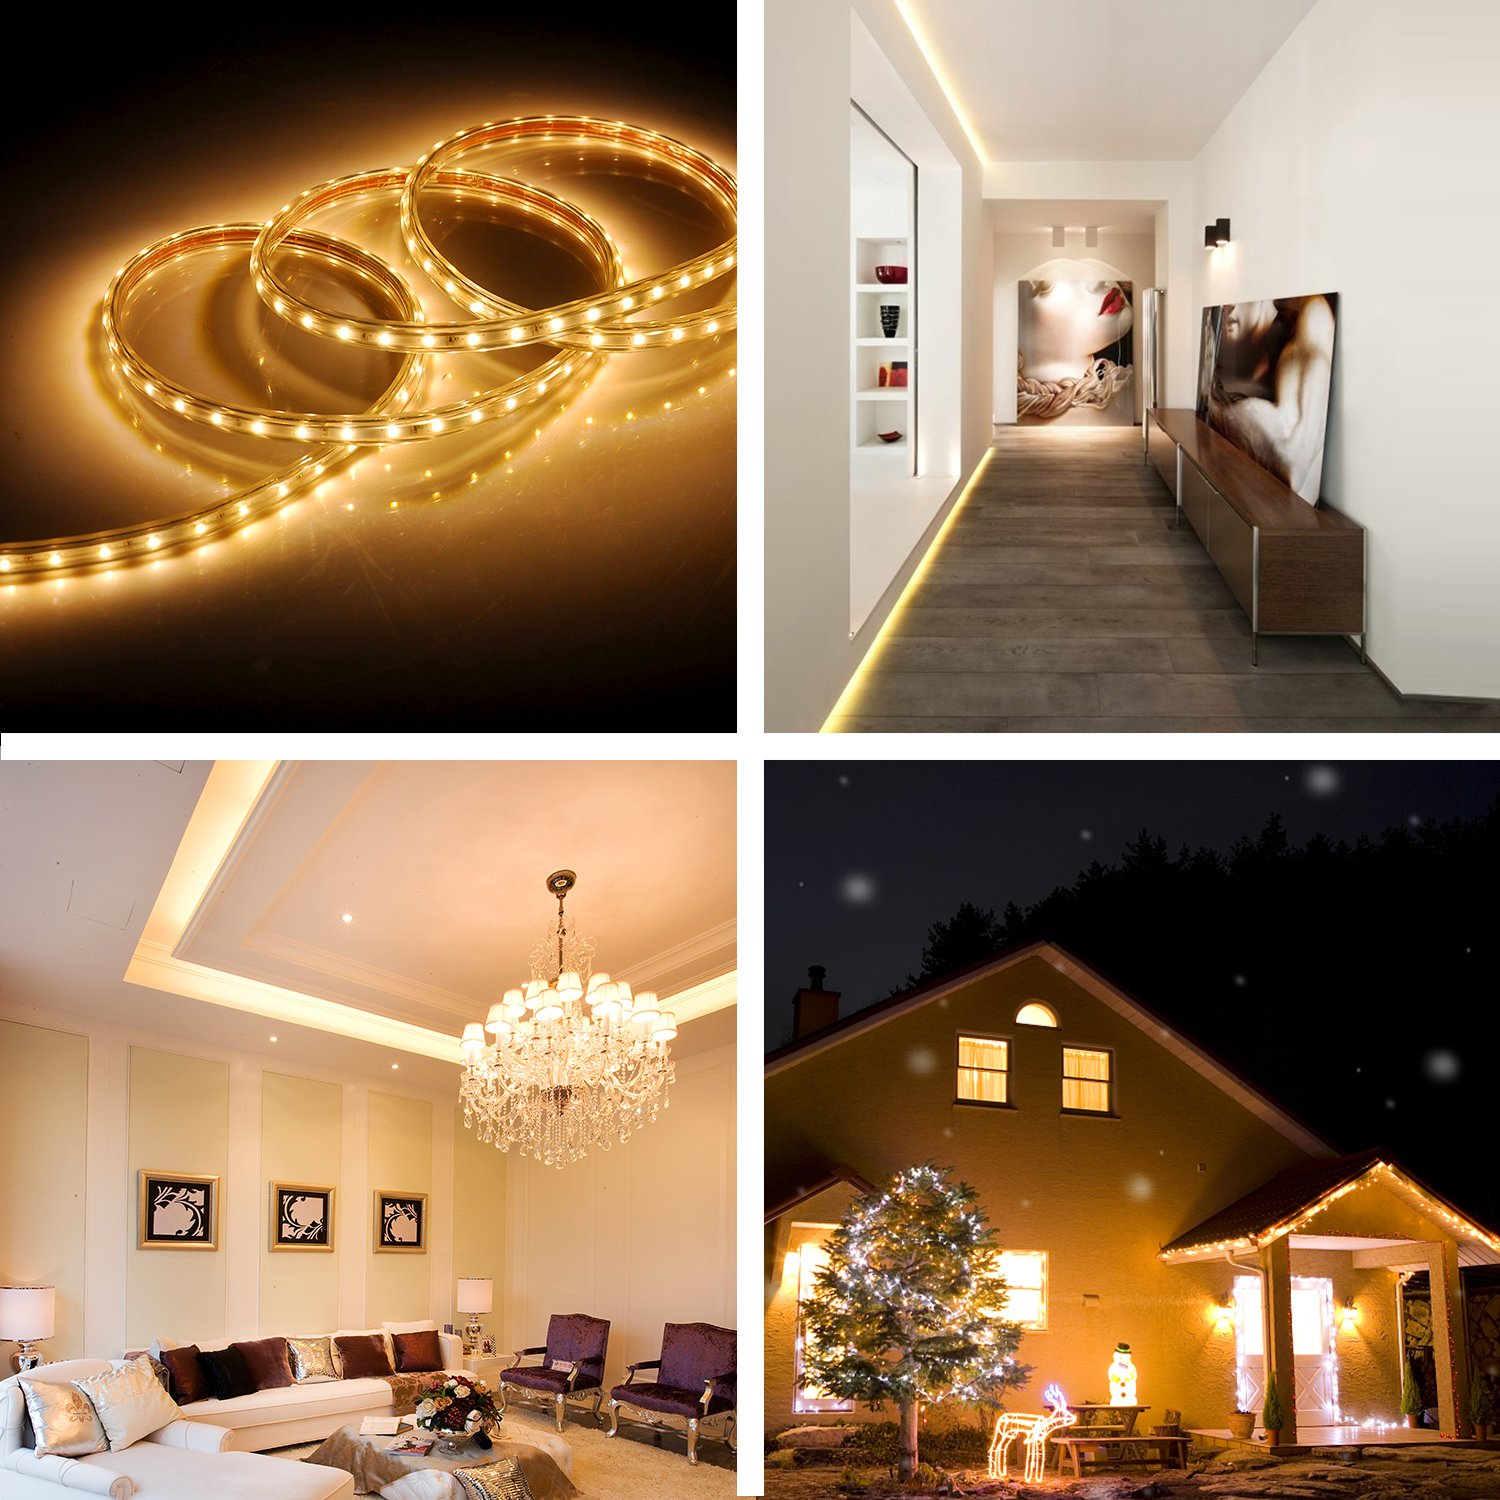 2019 New Design Warm White USB LED Light Strip Kit with 6.6FT 2M SMD 3528 IP65 Waterproof Super Bright LED Tape Light Battery Operated LED Strip Lights Battery Case iCreating